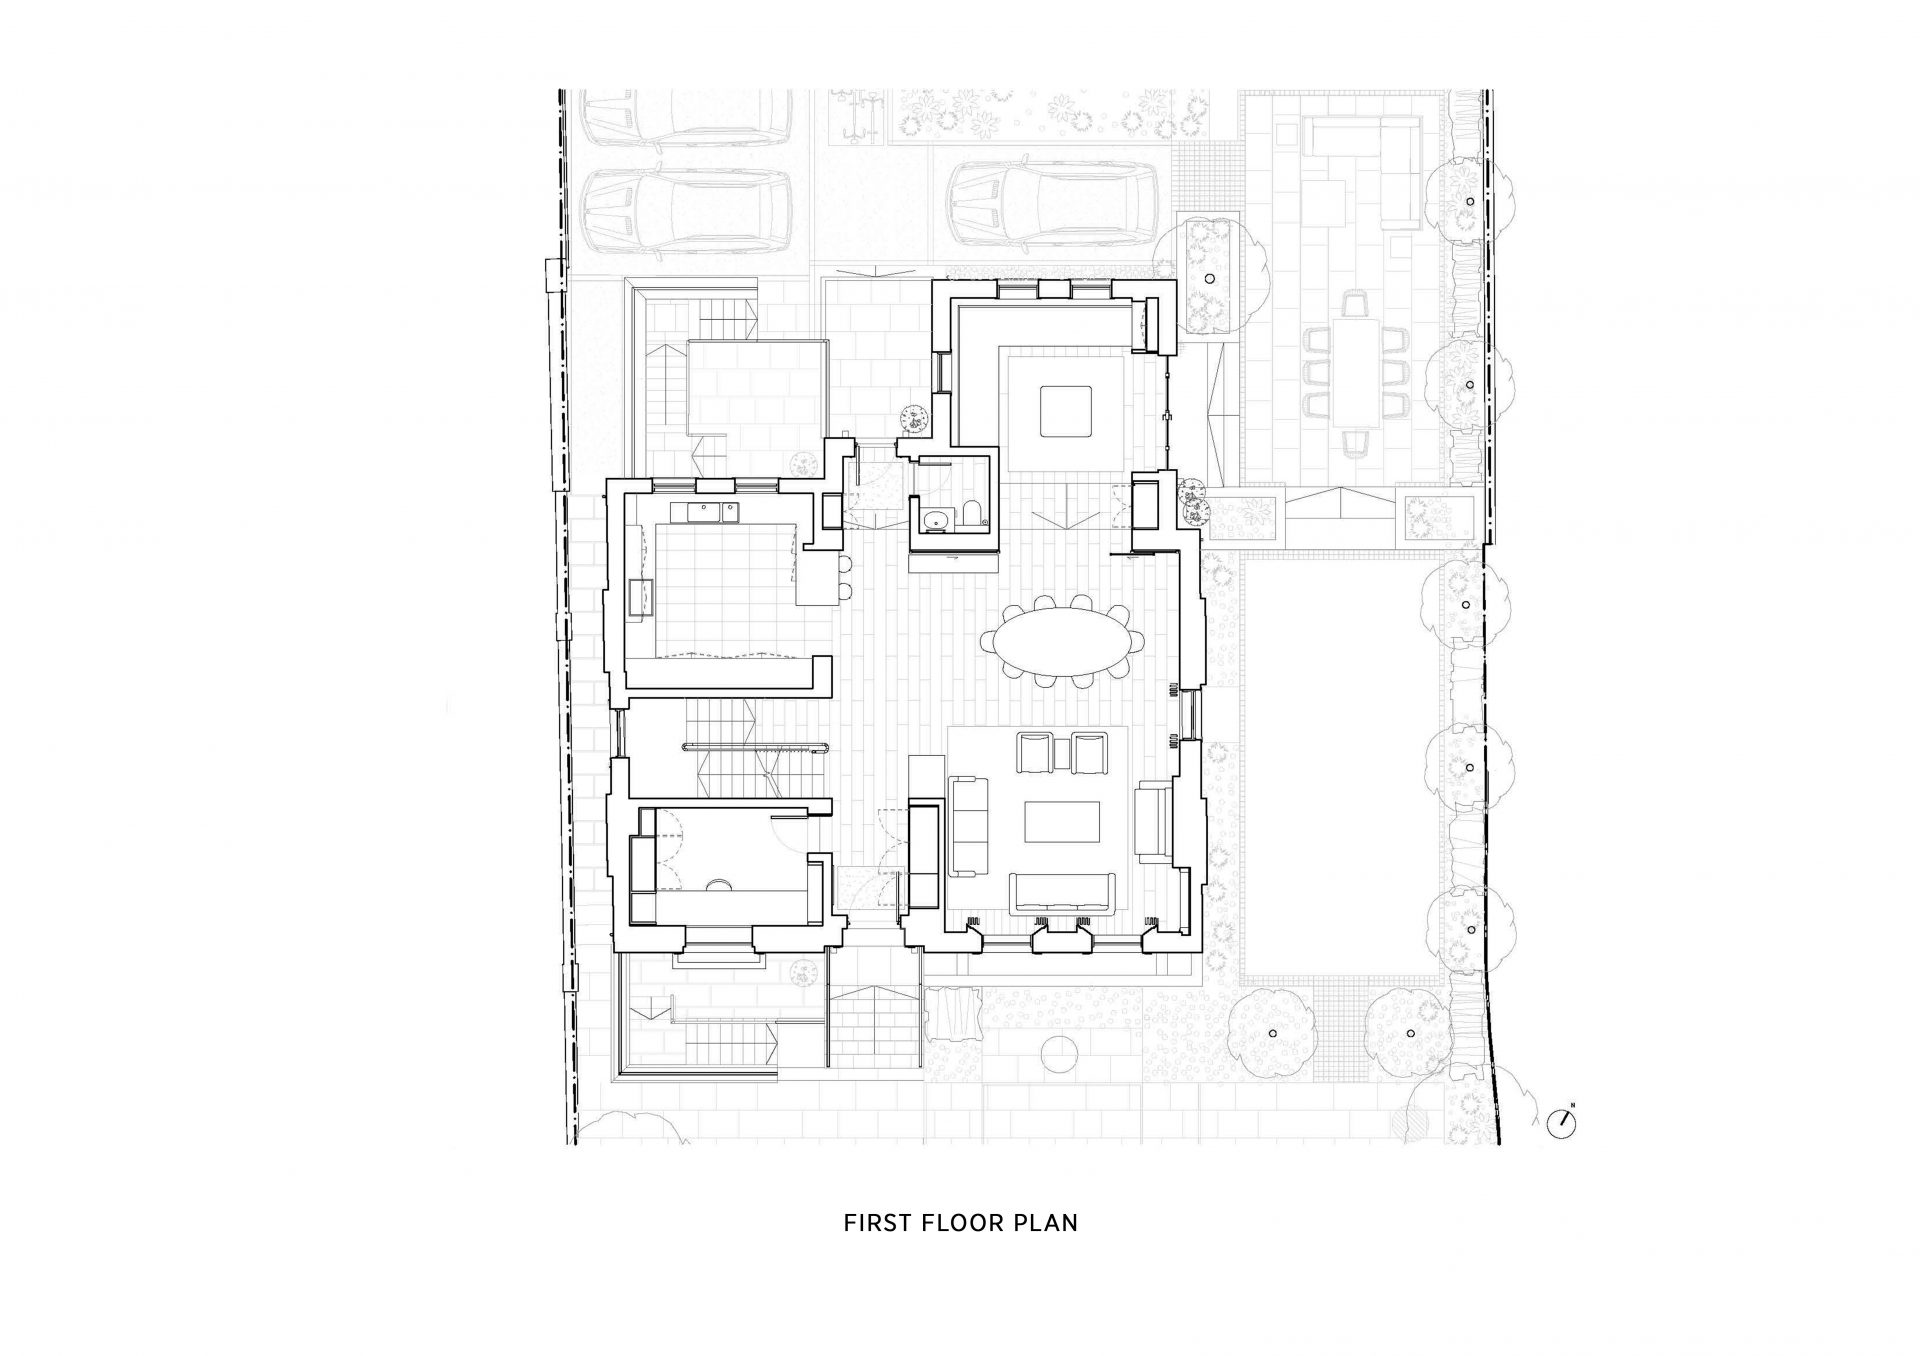 KSR - Curated Home - First Floor